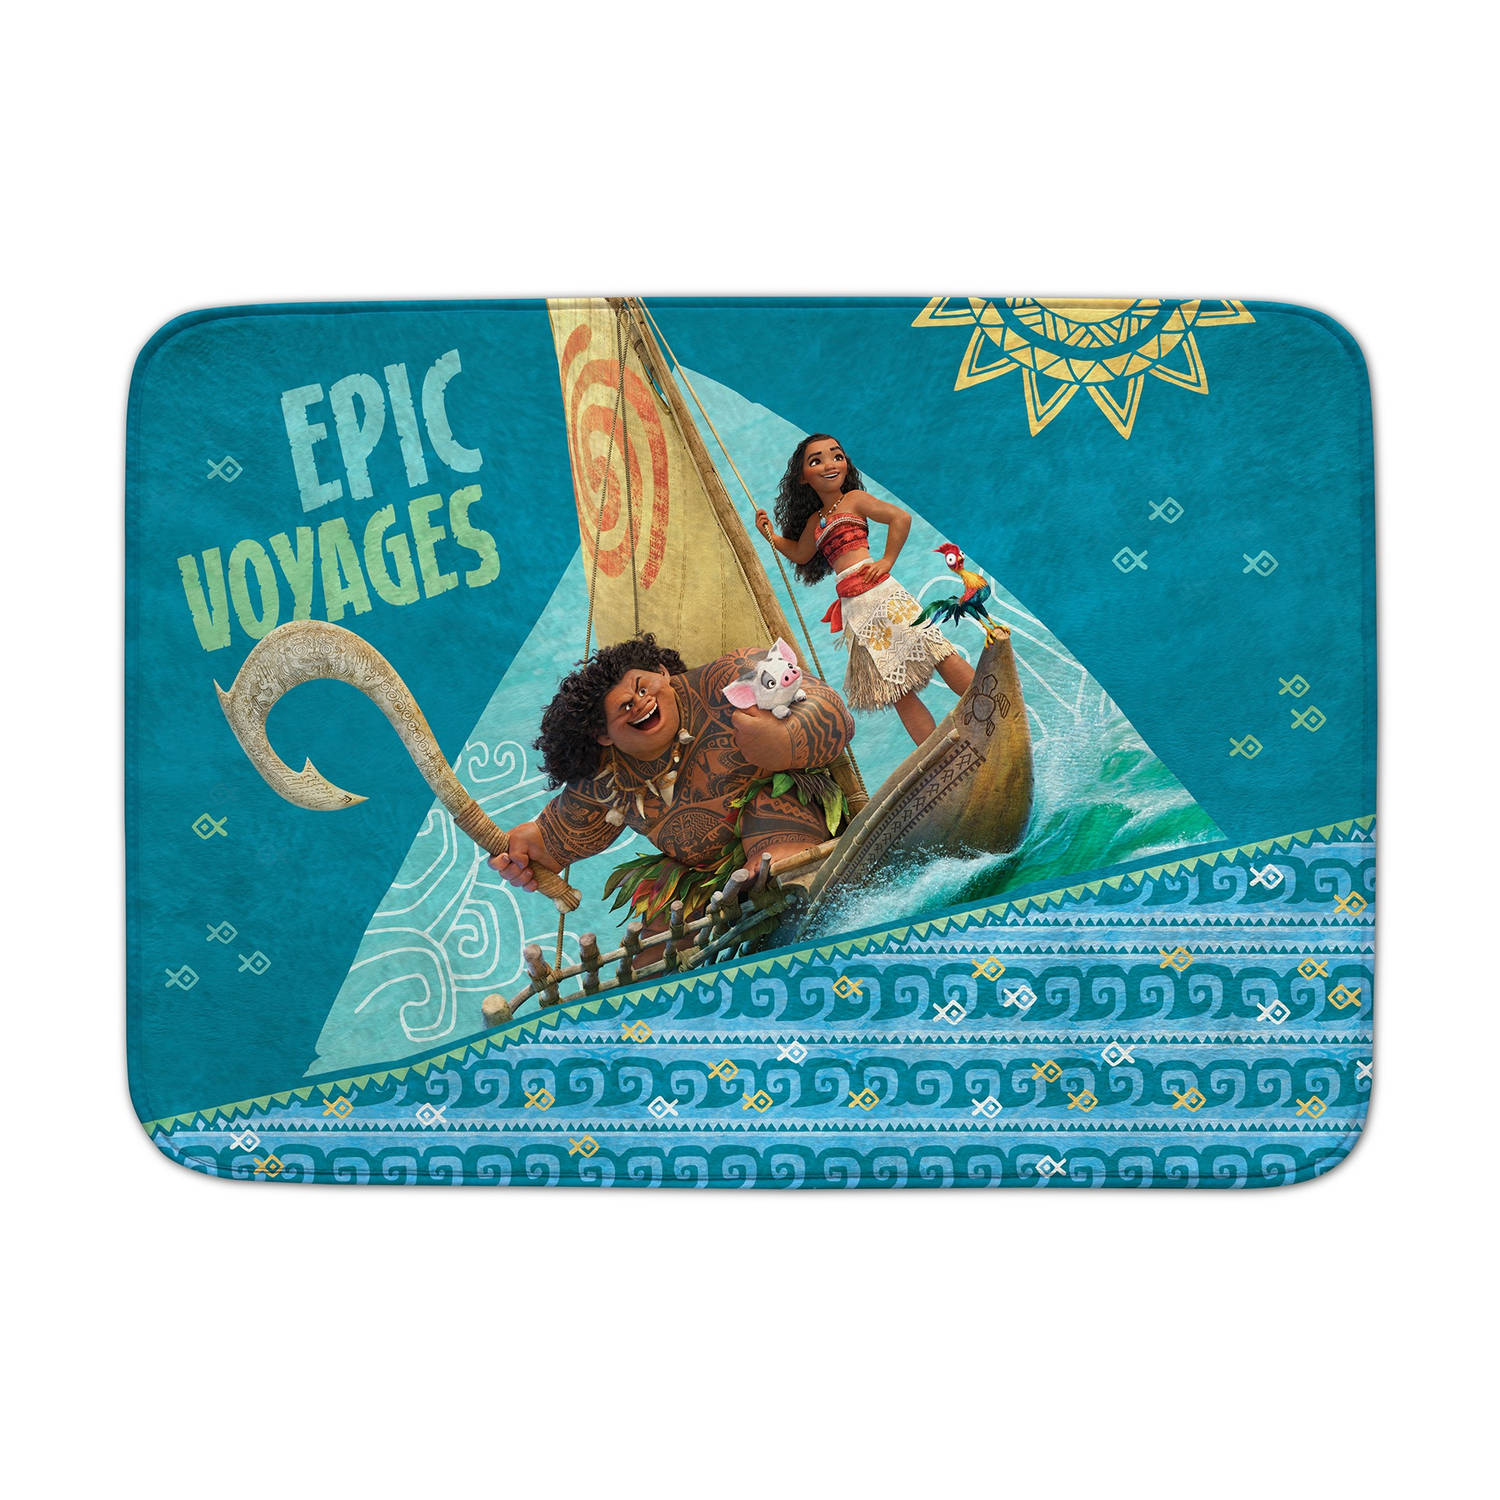 House of Kids speelkleed Moana Epic Voyages 70 x 95 cm blauw